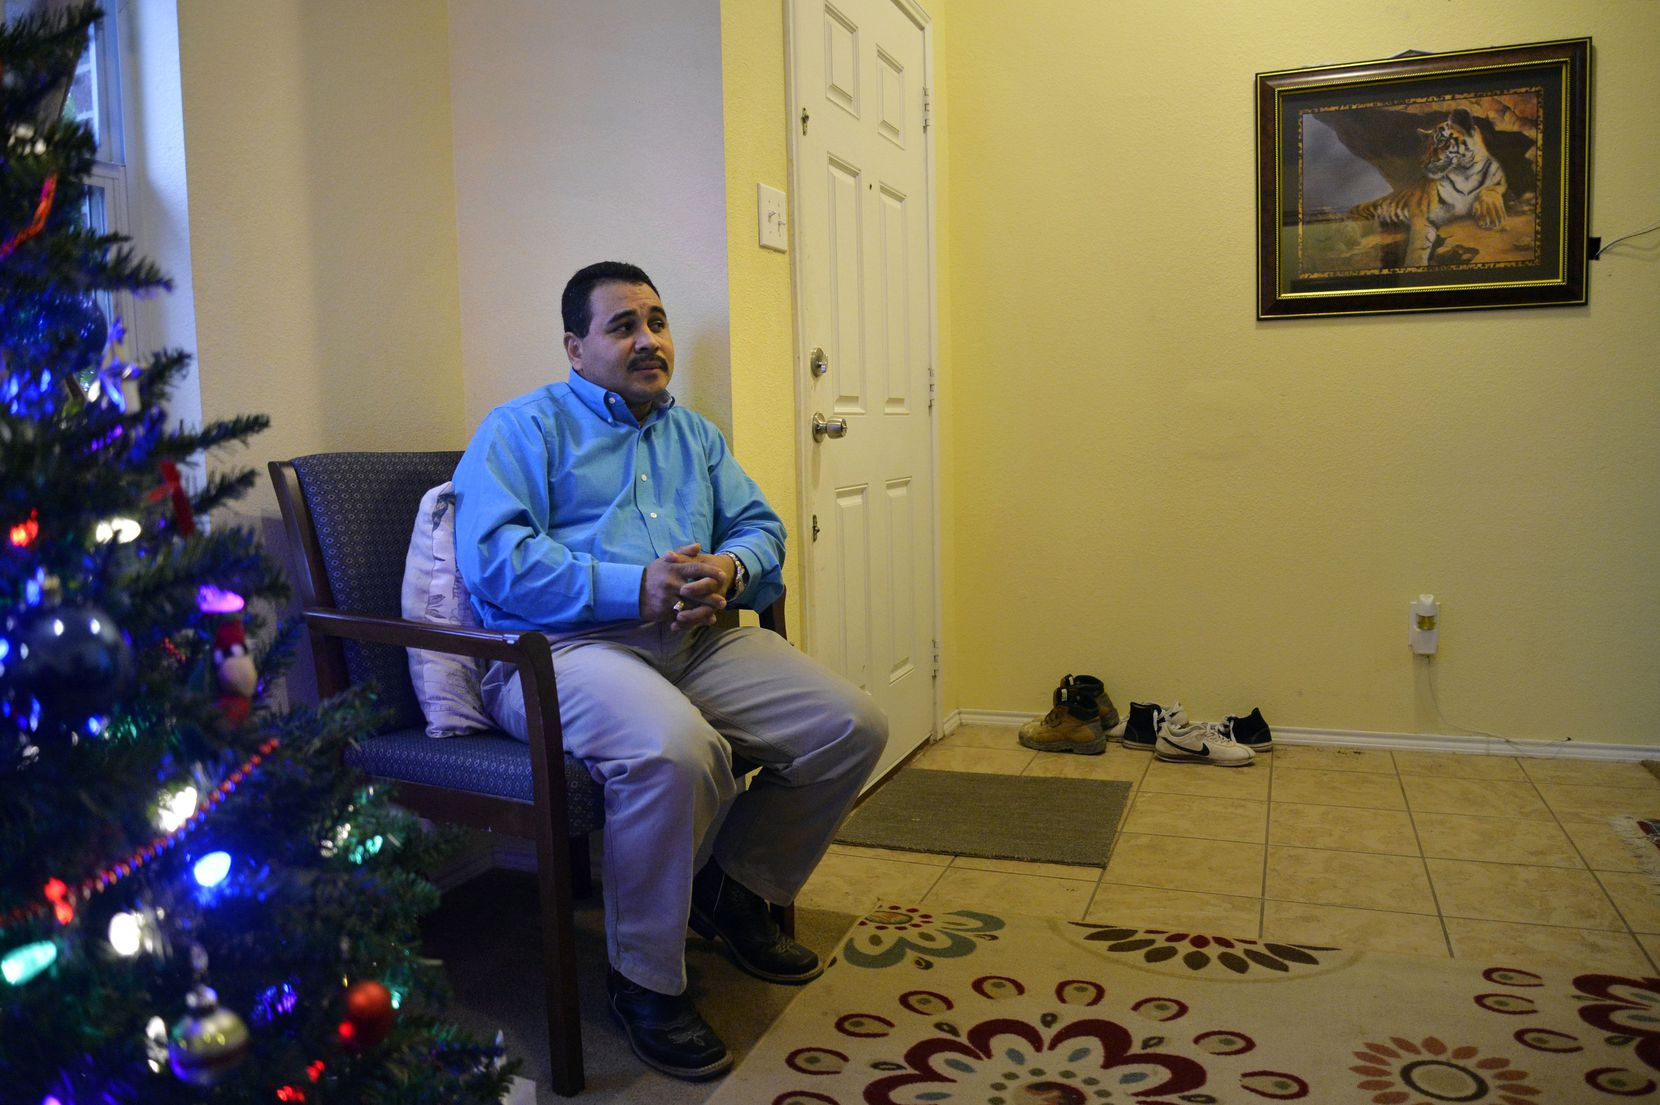 Adan Barahona sits while talking about his daughter in his home on Sunday, December 20, 2015 in Dallas. Barahona is waiting for his daughter Giselle Barahona, 21, who will be a CAM refugee from Honduras.